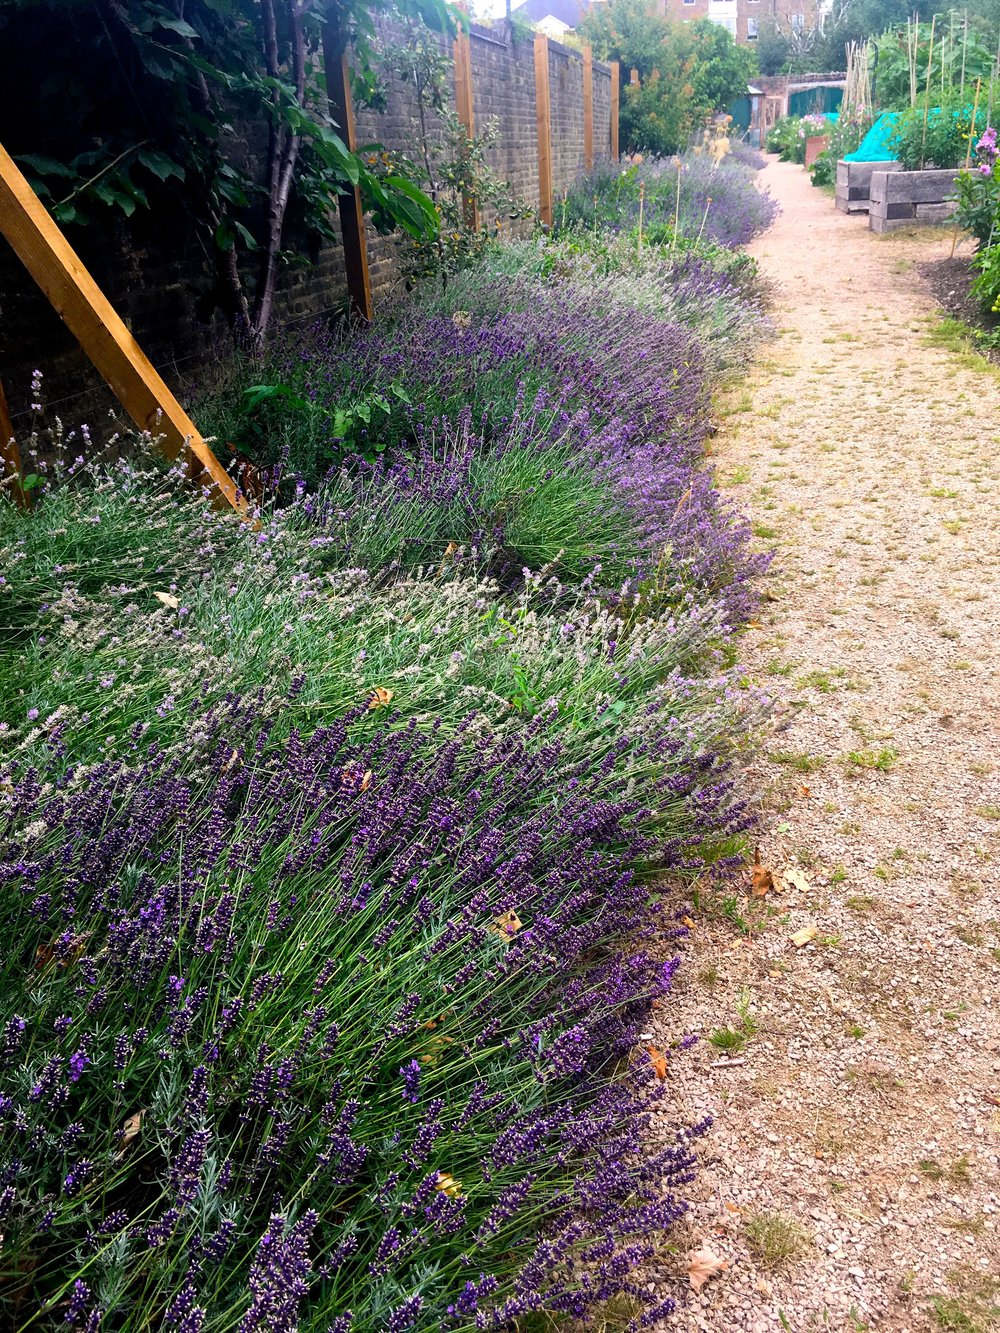 LAVENDER EDGING THE GRAVEL PATH, UNSURPRISINGLY IT WAS FULL OF BEES